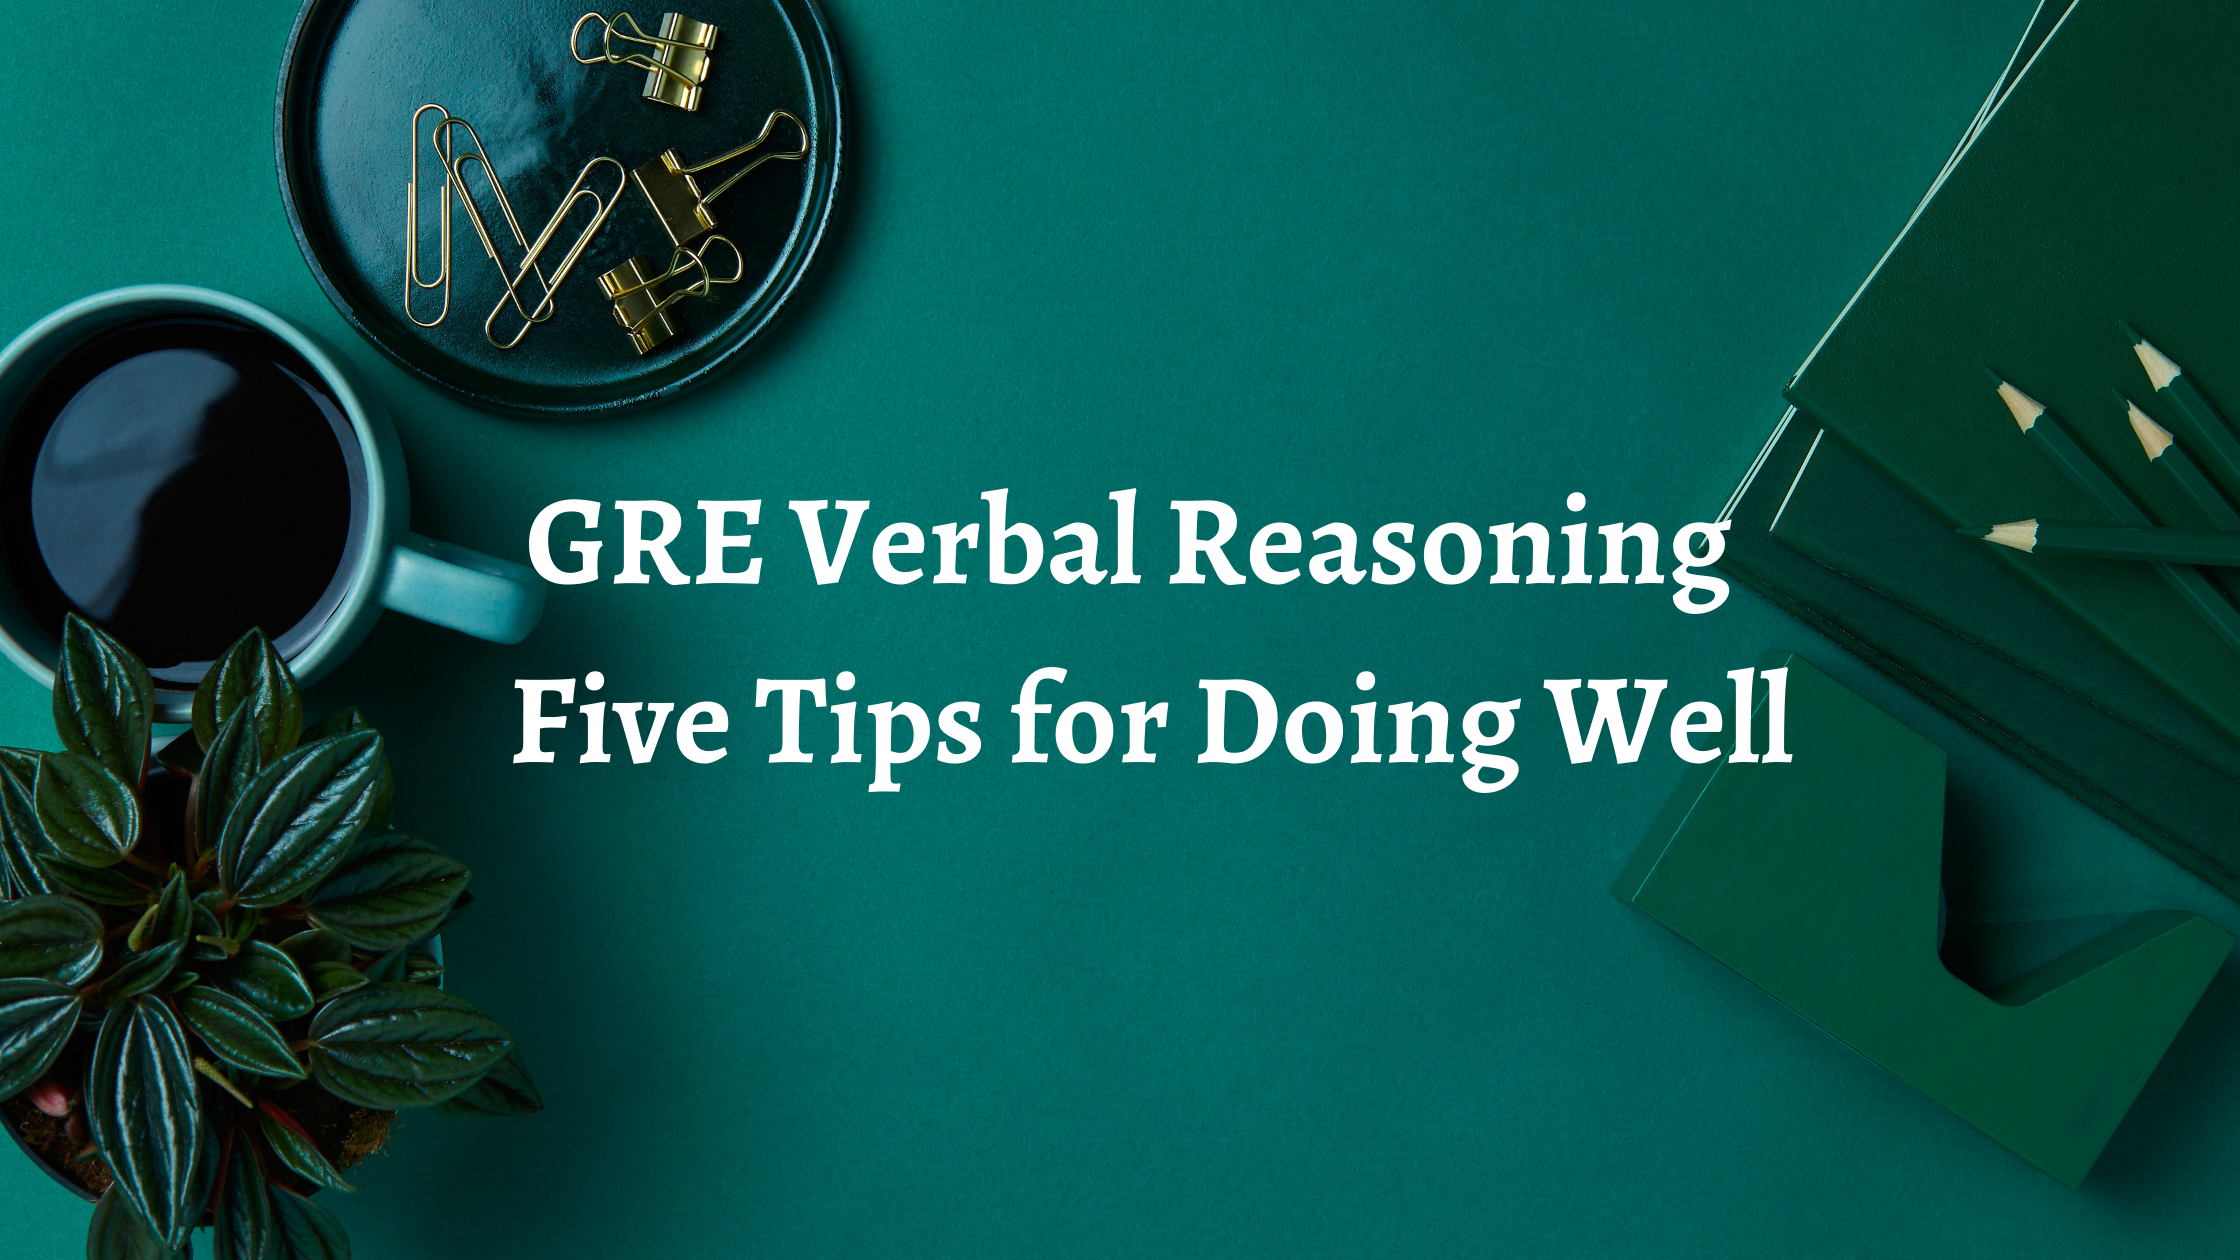 GRE Verbal Reasoning: Five Tips for Doing Well